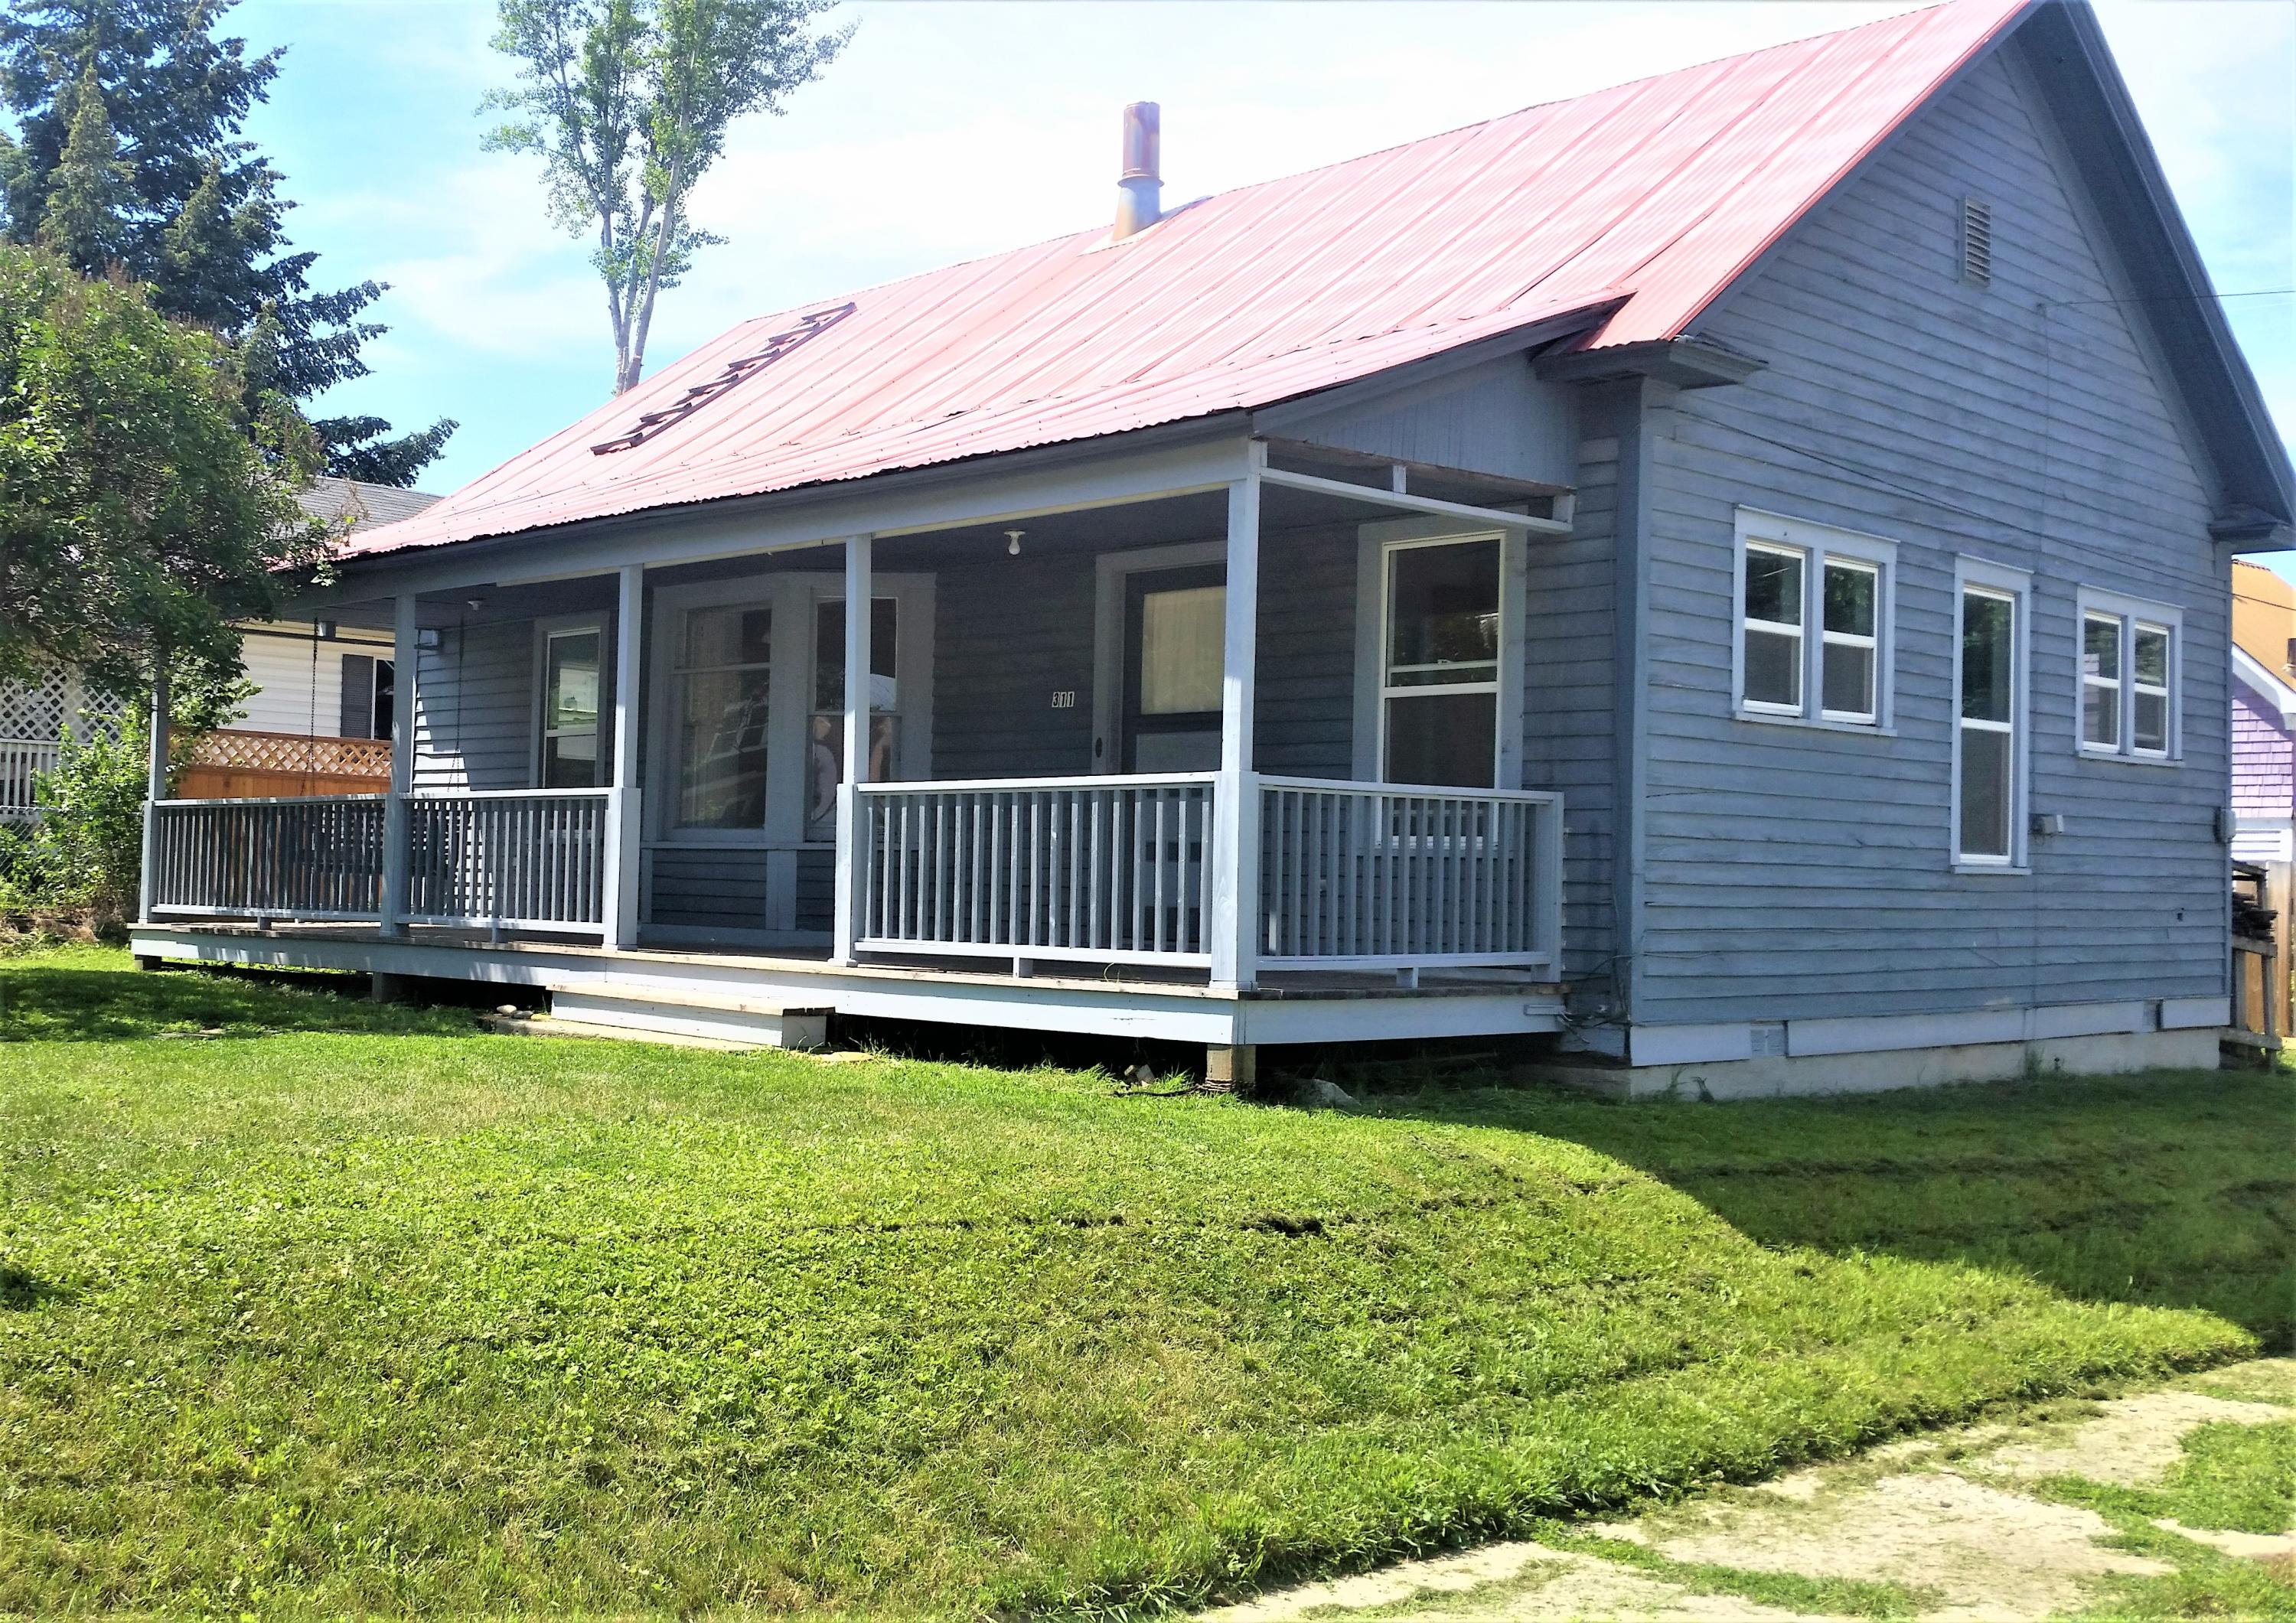 Downtown charmer convenient to area shops, schools, and recreation. This home would make a great starter home or rental property. Stylishly renovated, this single level home boasts 3 bedrooms and an open floor plan rich in natural light. Hardwood floors and a wood stove compliment this budget friendly home in town.  Situated on a large corner lot with mountain views you will adore the location. Contact Gretchen Lancaster at 406-291-7099 or your real estate professional.